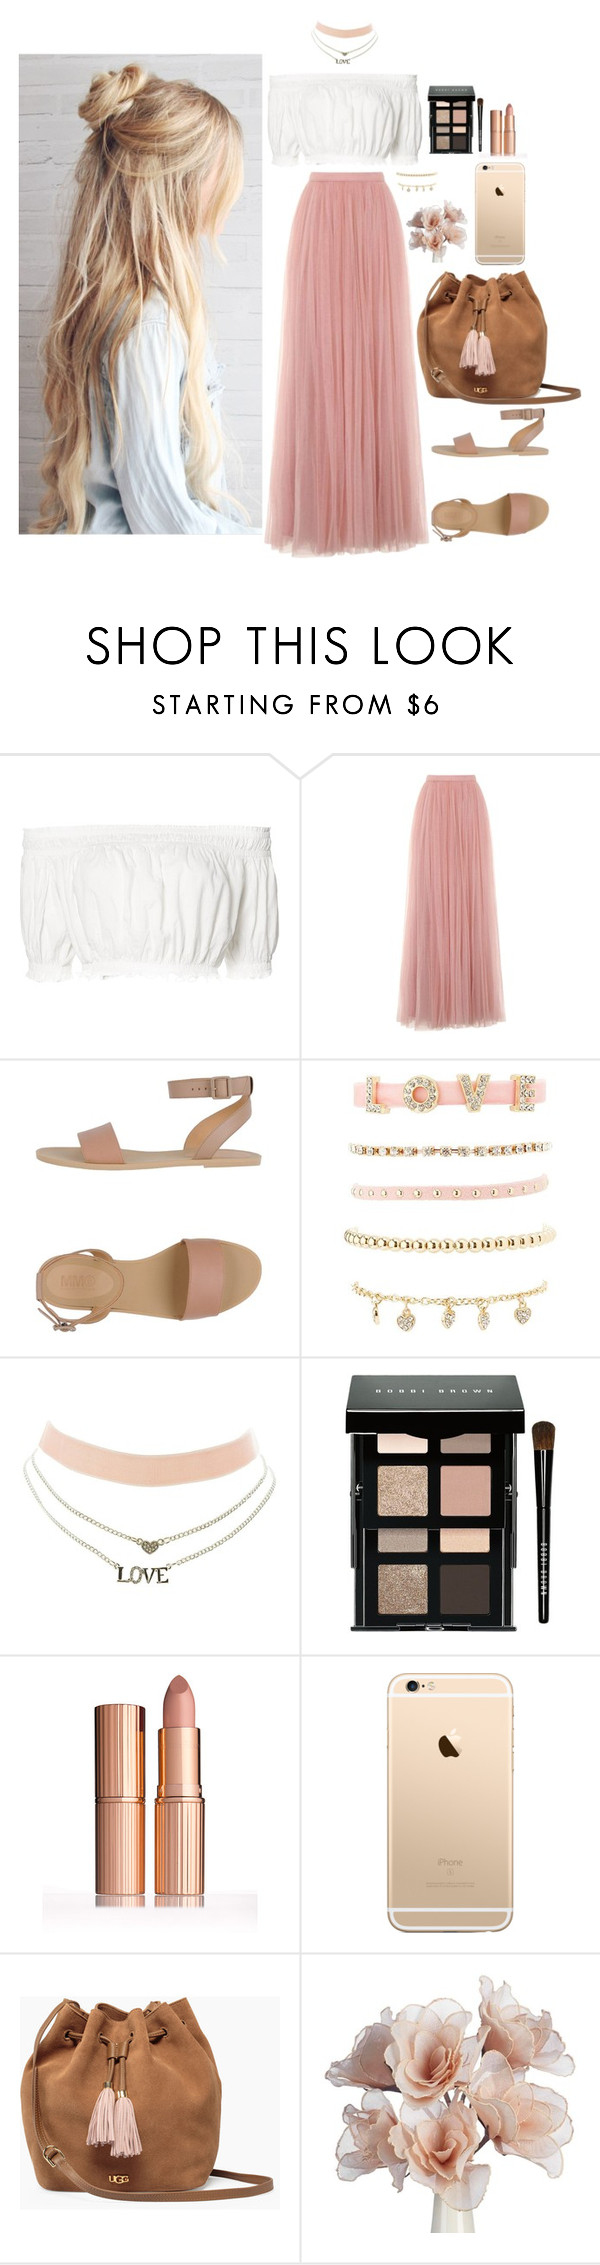 """""""yeah #147"""" by vieirakarol ❤ liked on Polyvore featuring Apiece Apart, Little Mistress, MM6 Maison Margiela, Charlotte Russe, Bobbi Brown Cosmetics and UGG"""